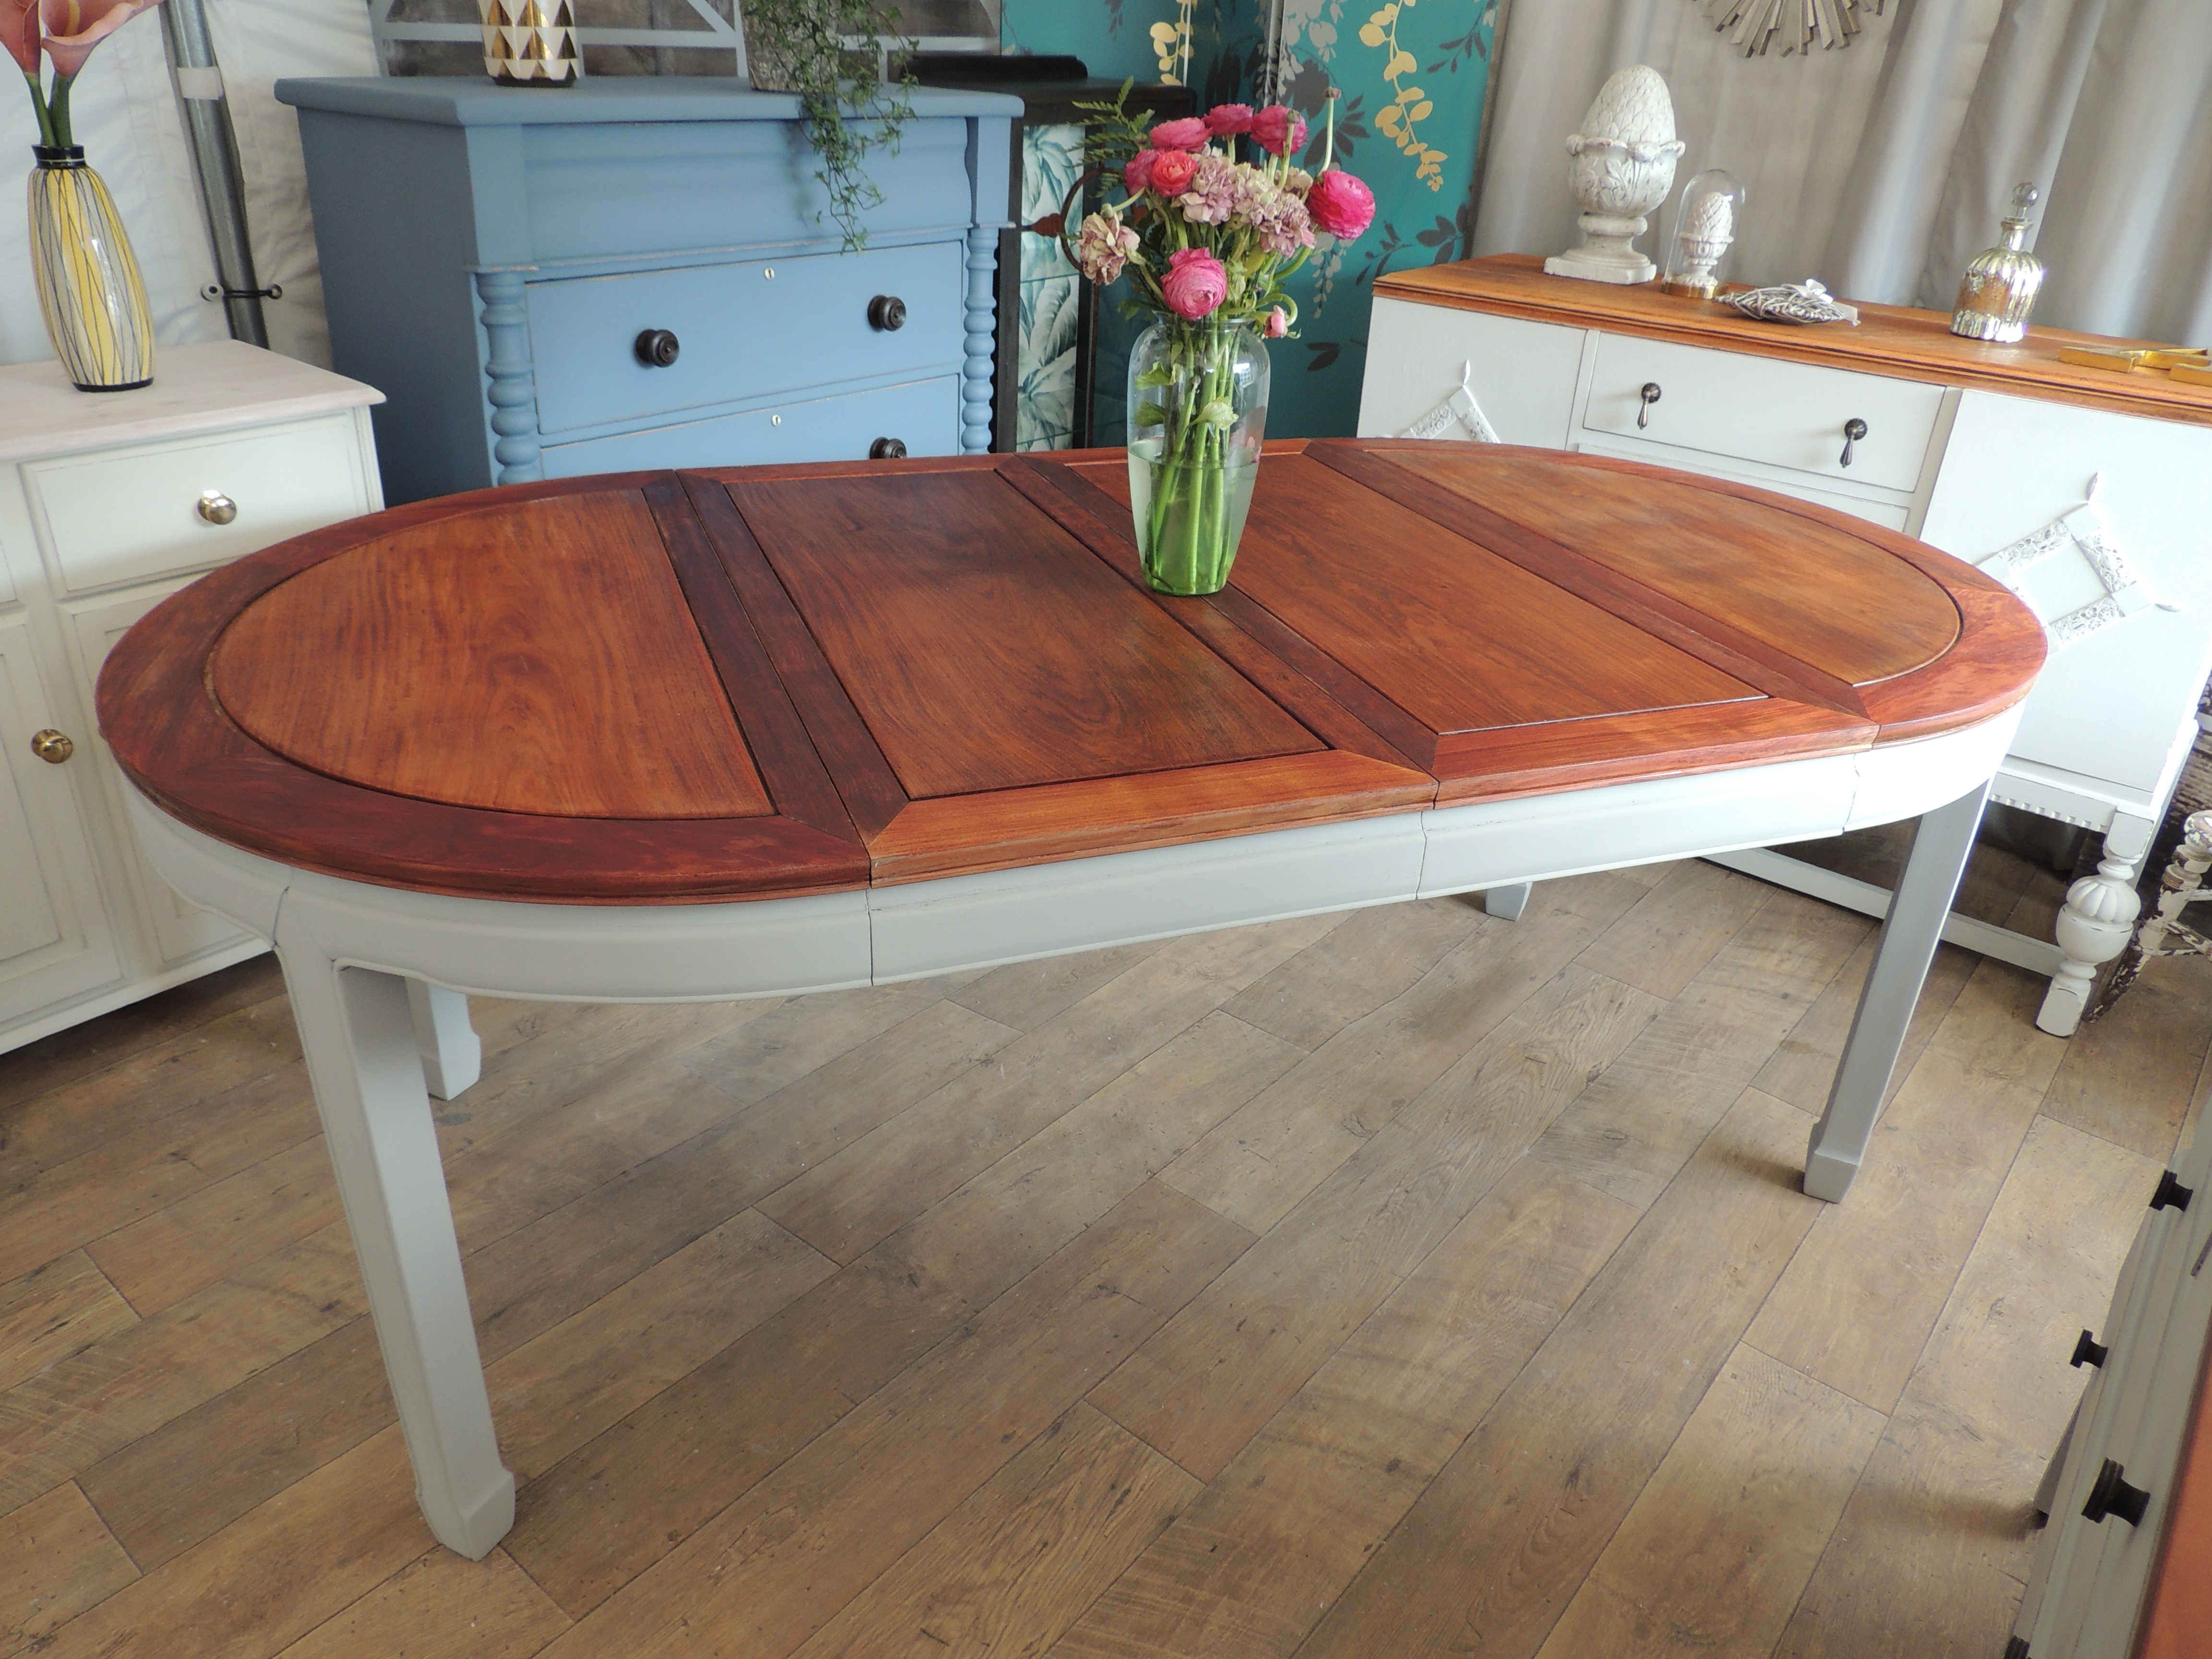 Most Current Shabby Chic Extendable Dining Tables Intended For Shabby Chic Extending Dining Table For 4 8 People – Eclectivo London (View 22 of 25)